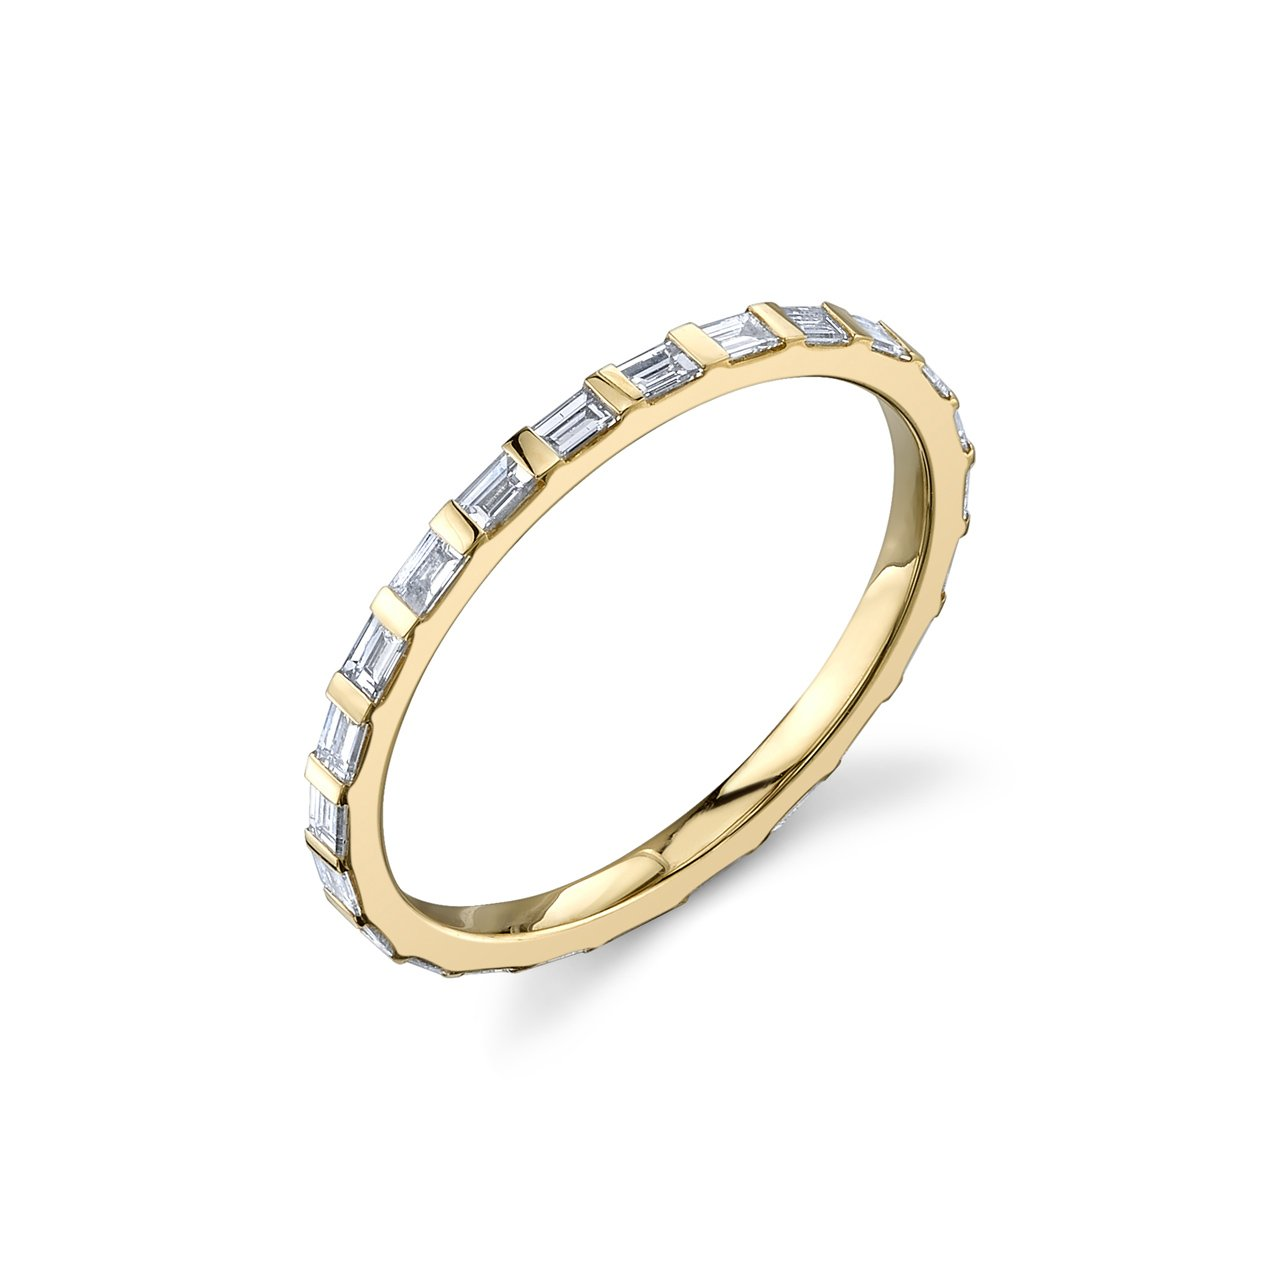 Gabriela Artigas Baguette Axis Ring with White Diamonds